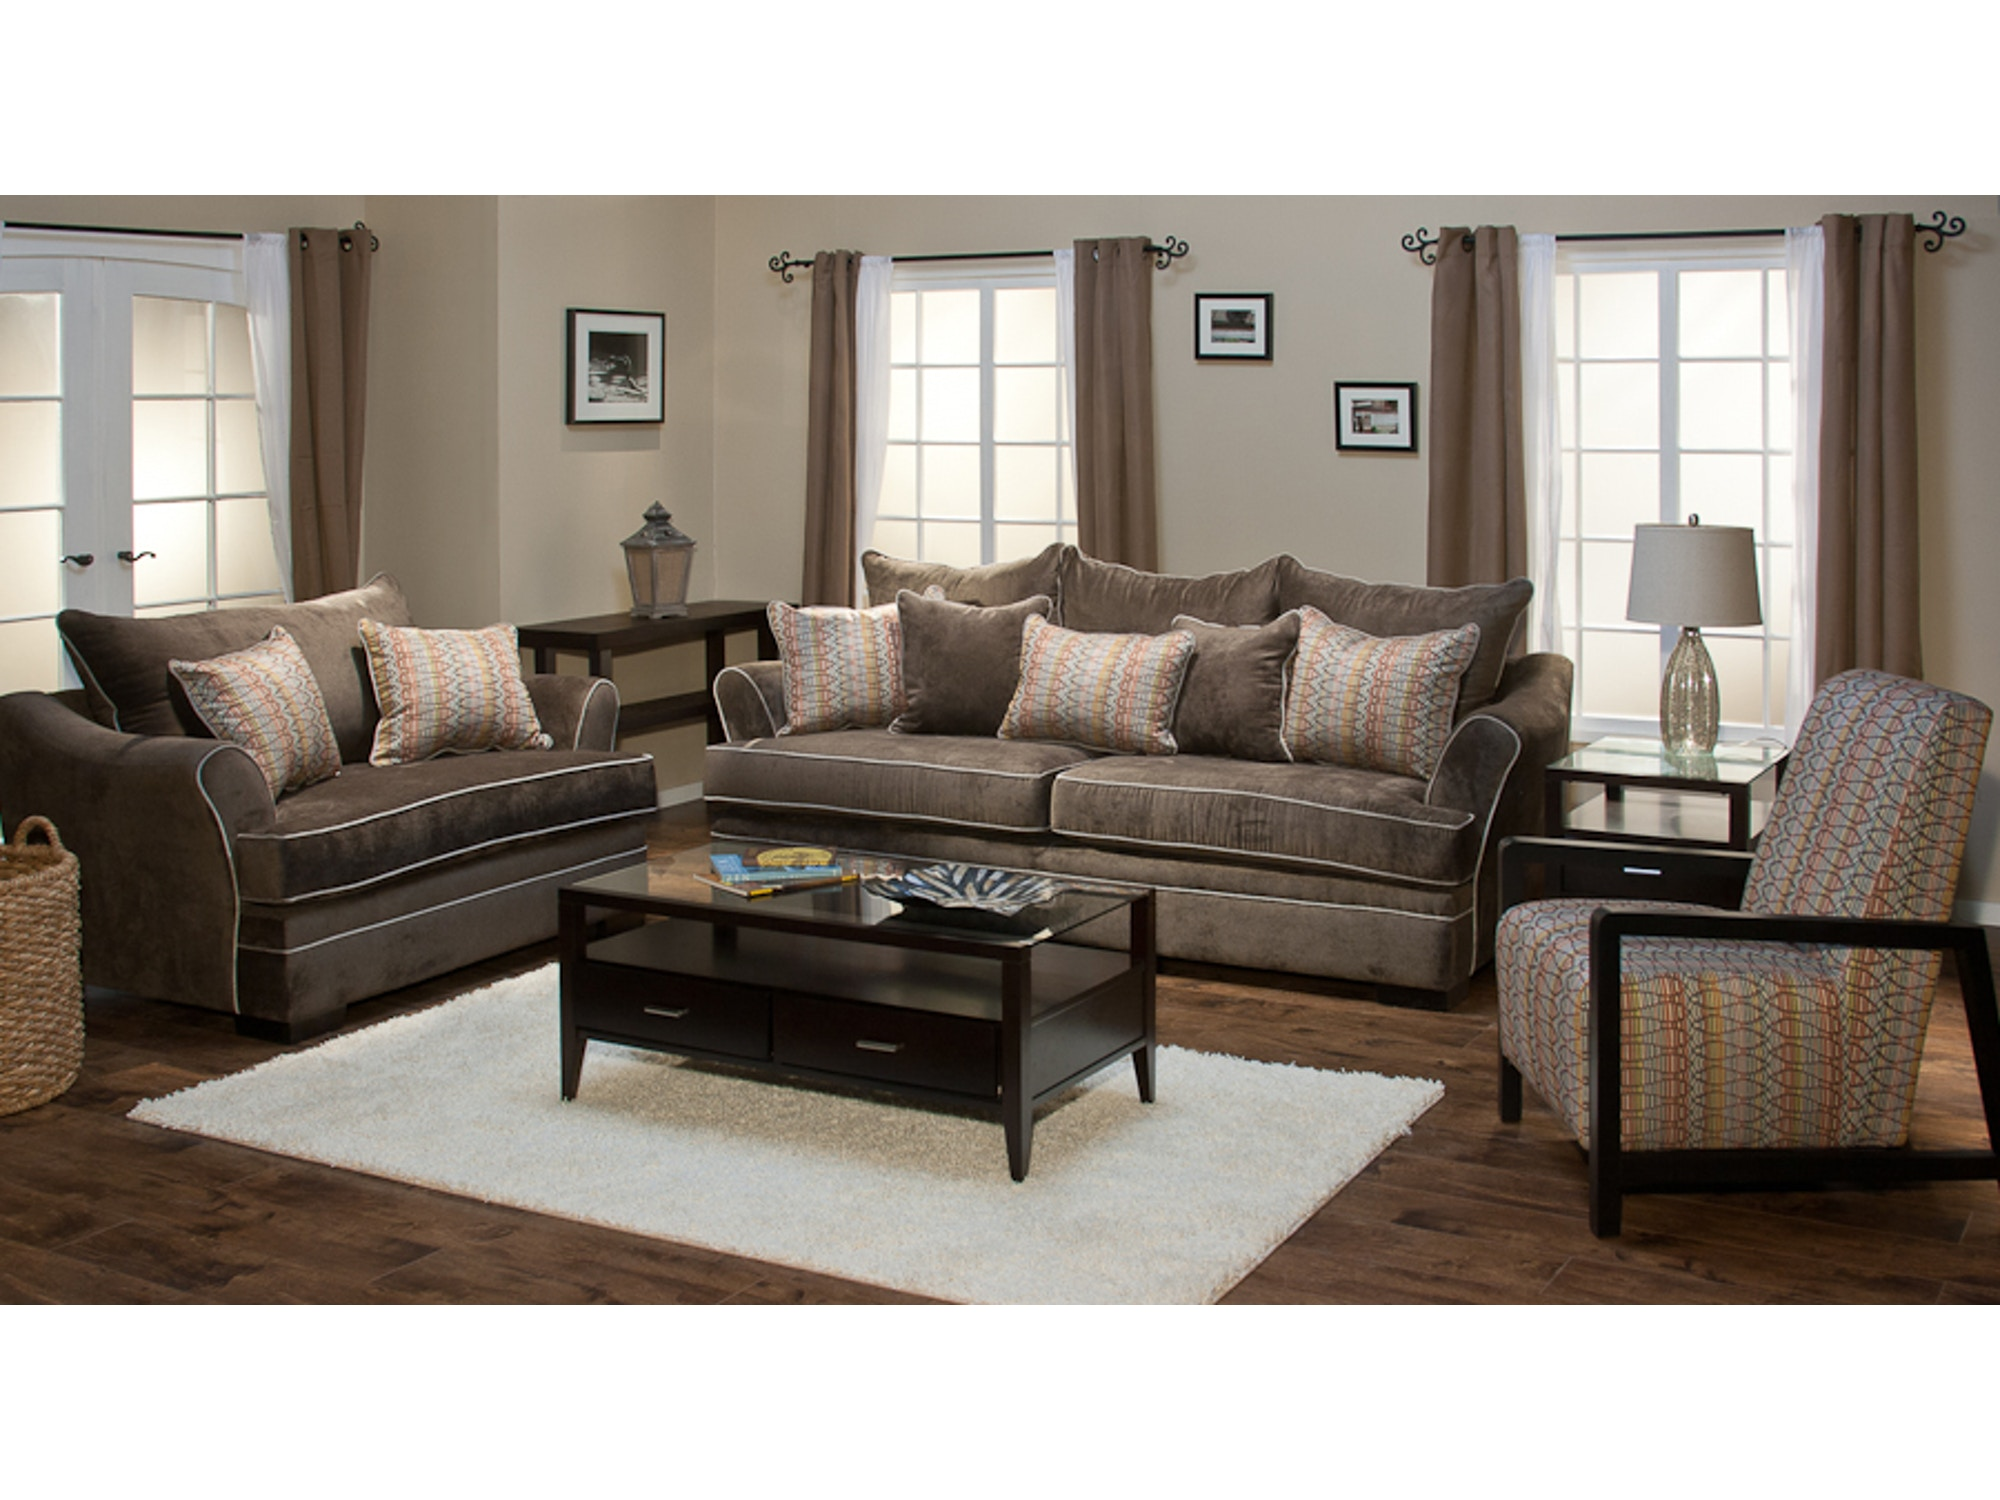 Living Room Loveseats - Furniture Fair - Cincinnati & Dayton OH and ...